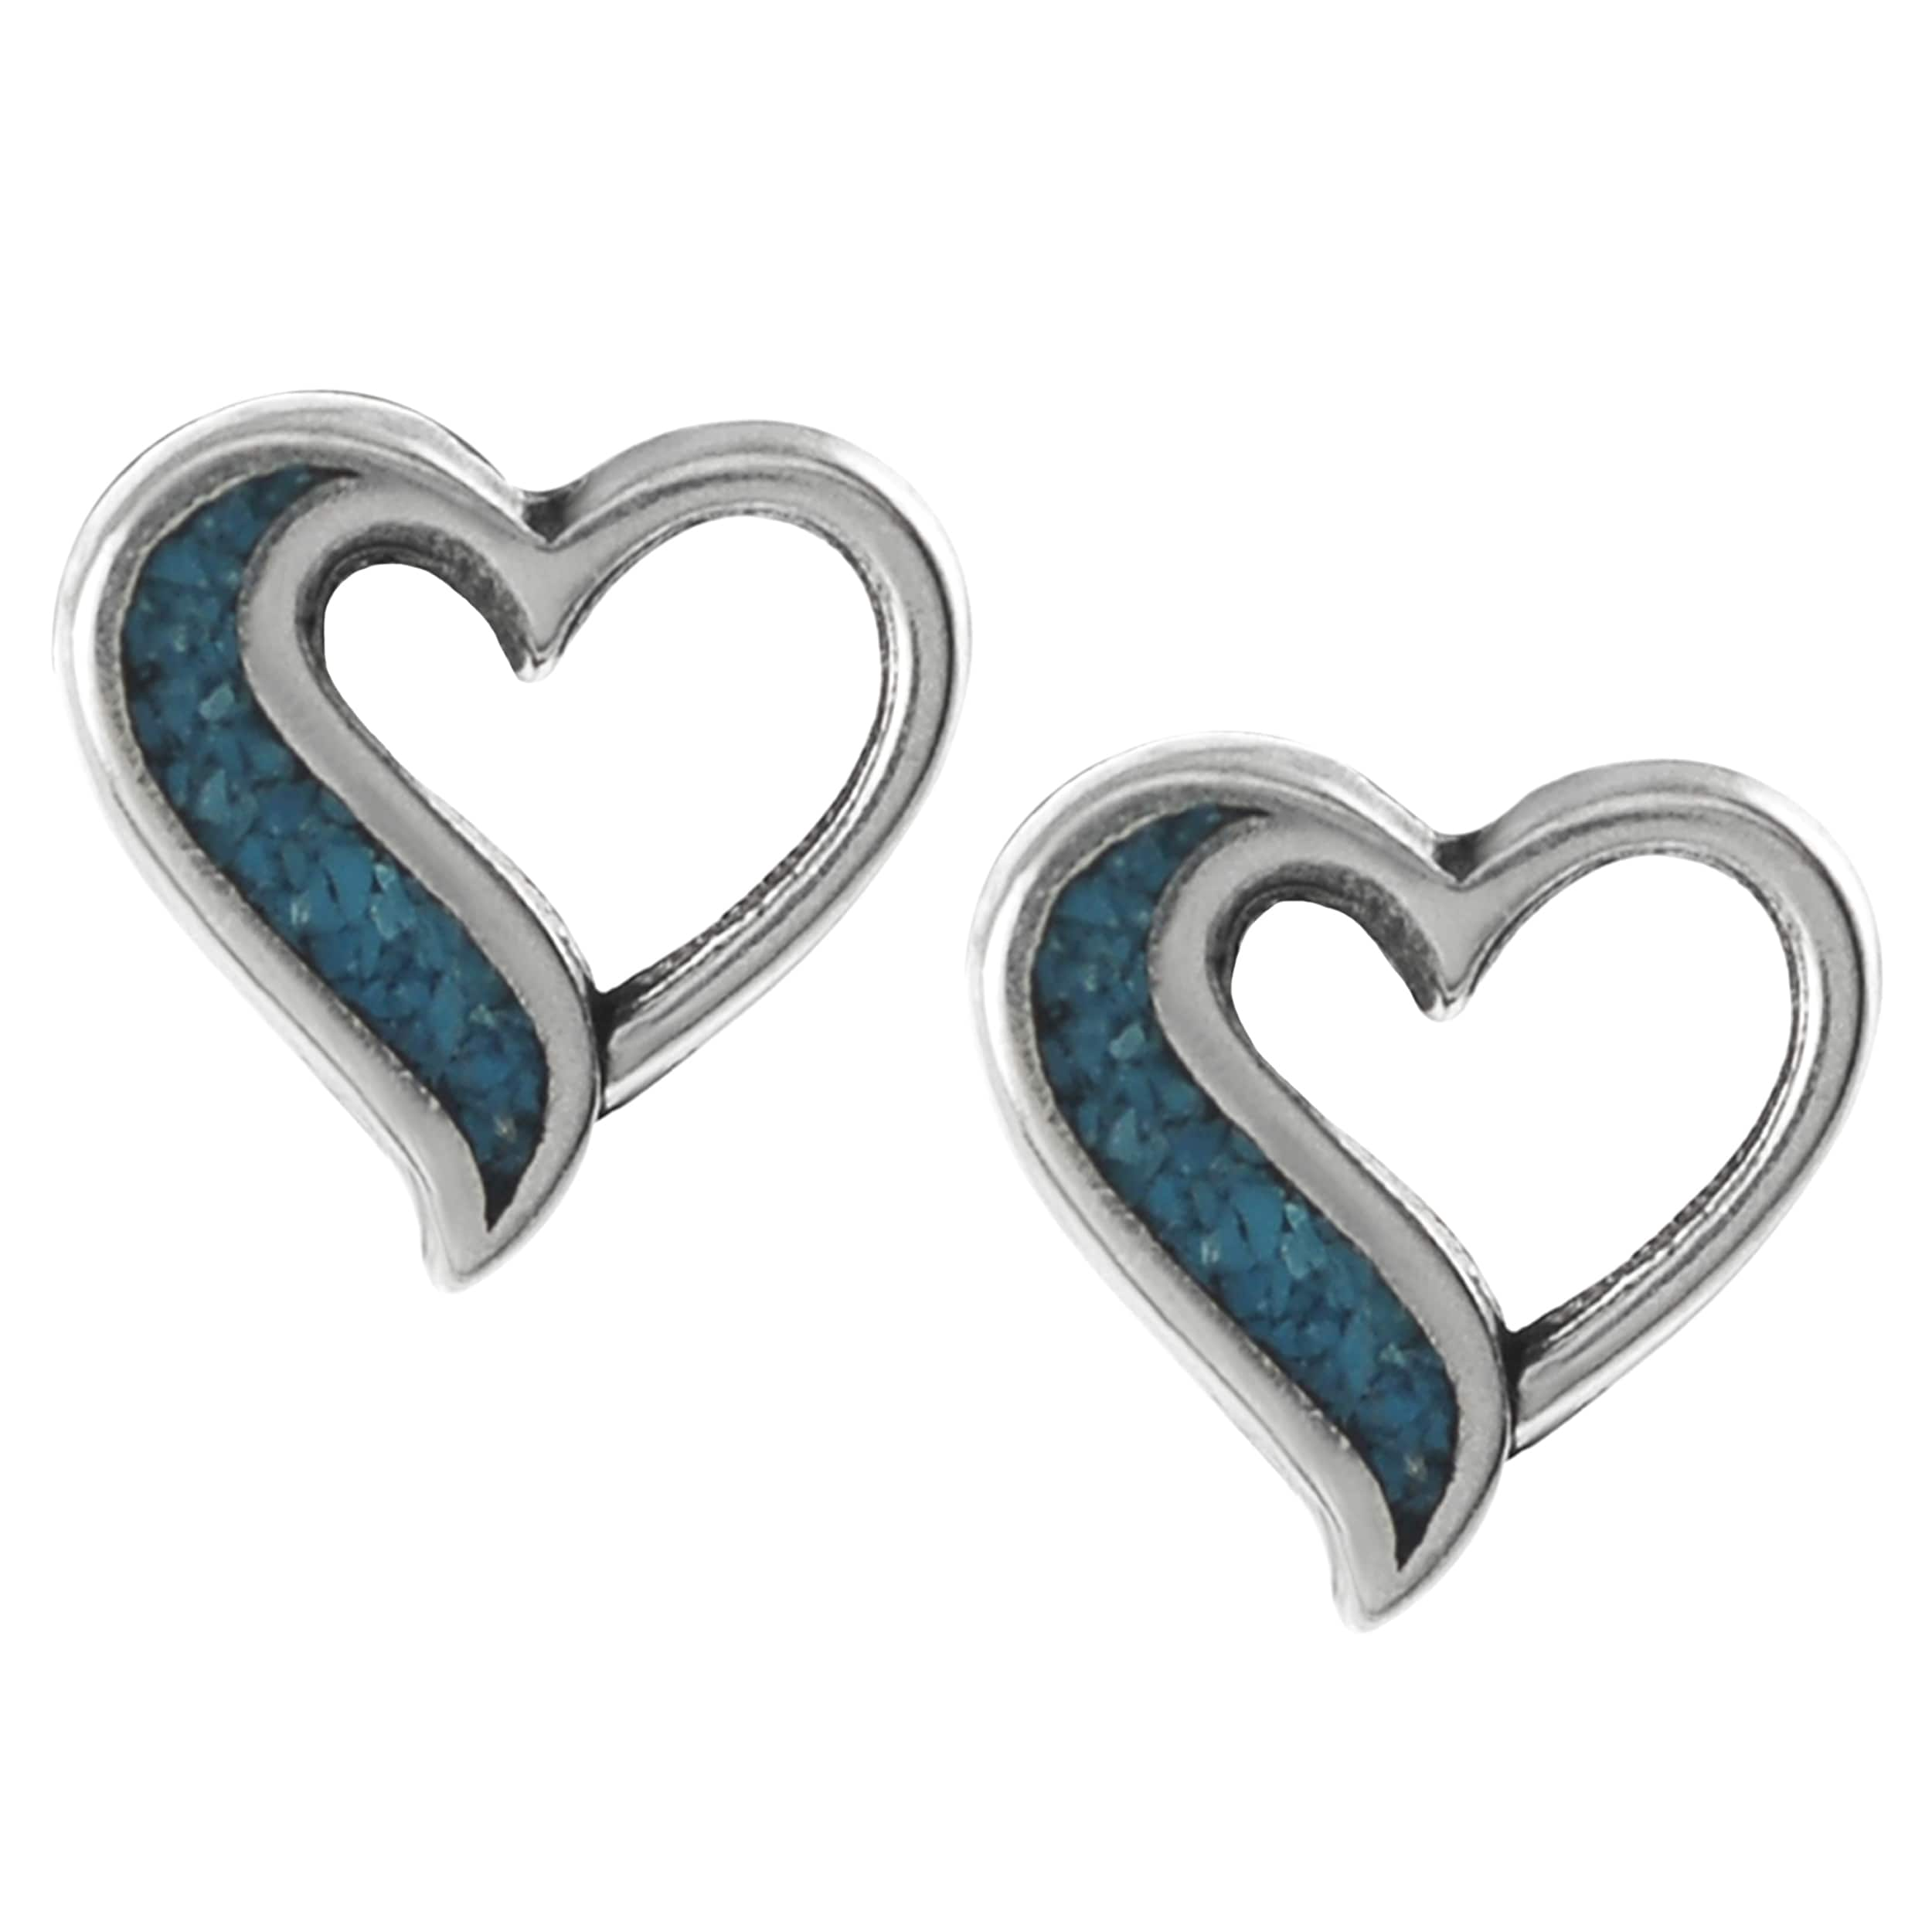 Journee Collection Sterling Silver Cut-out Heart Stud Earrings